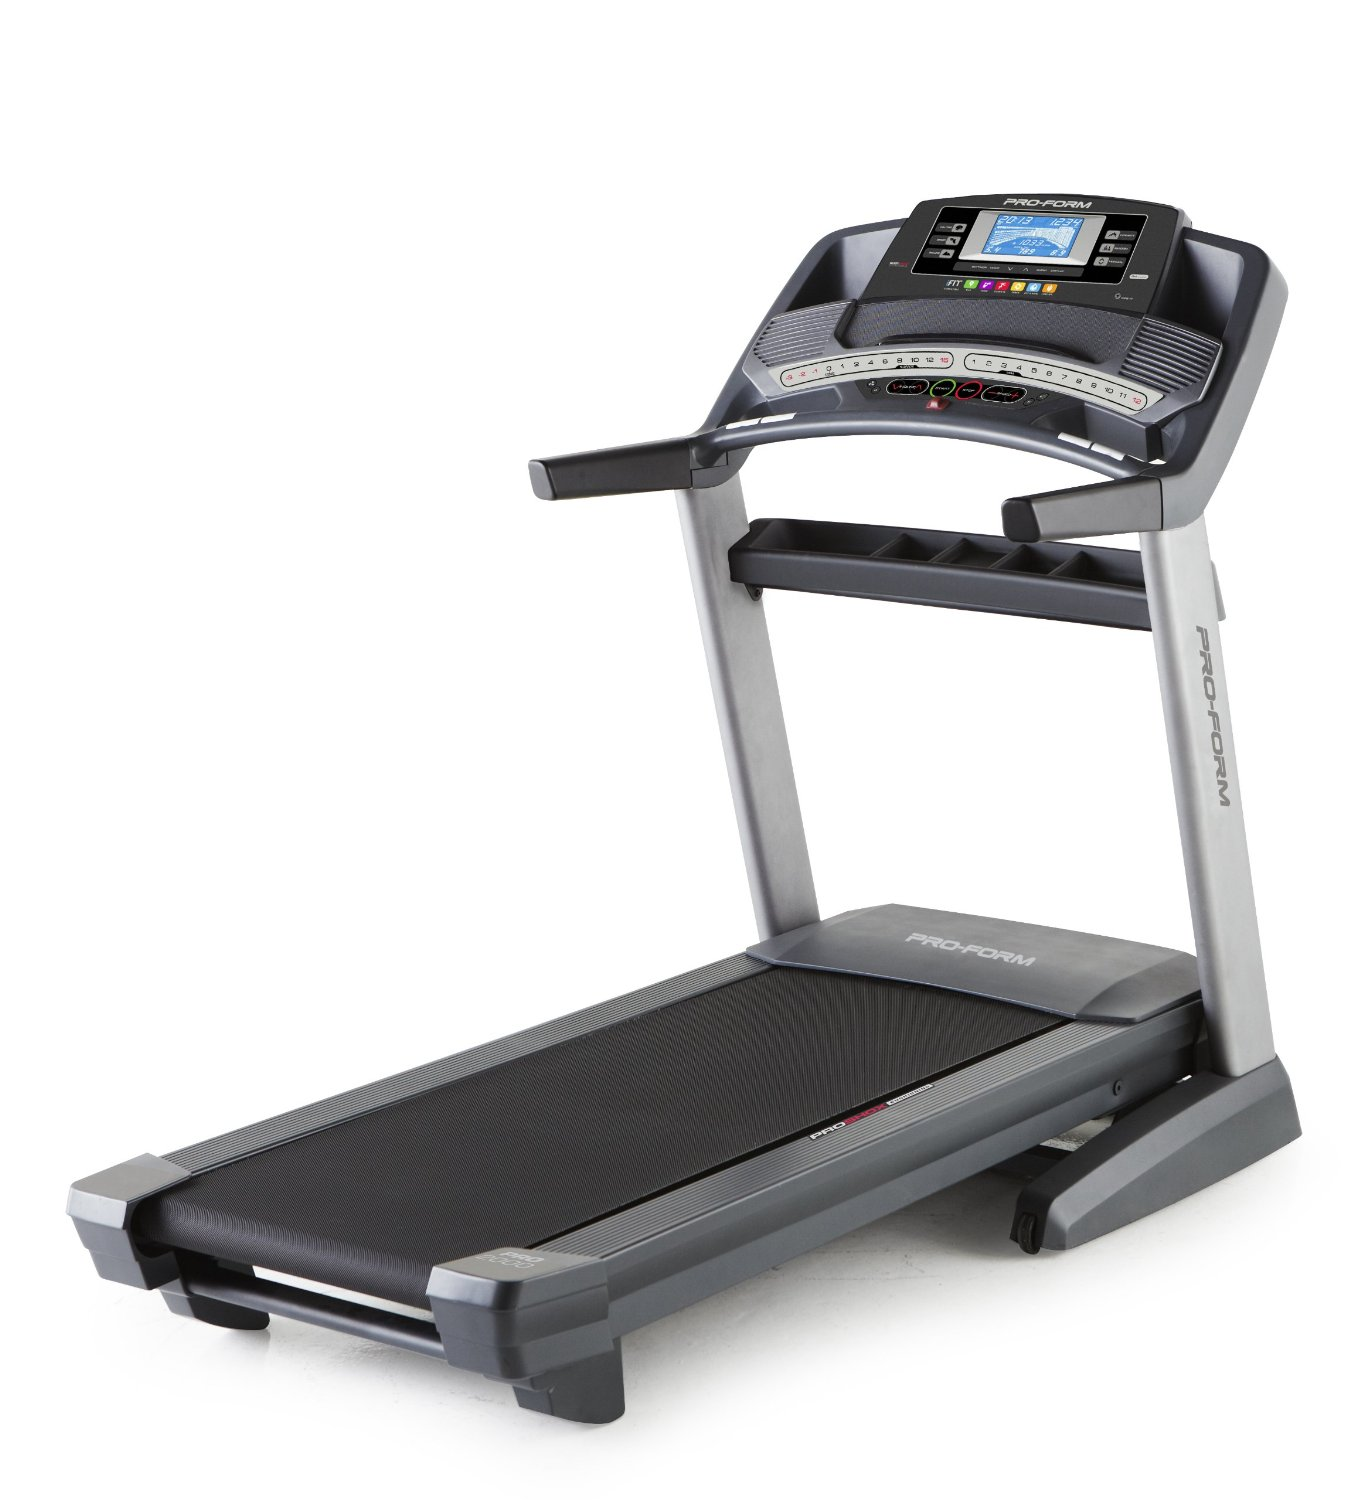 Here's What You'll Gain From Using A Proform Treadmill